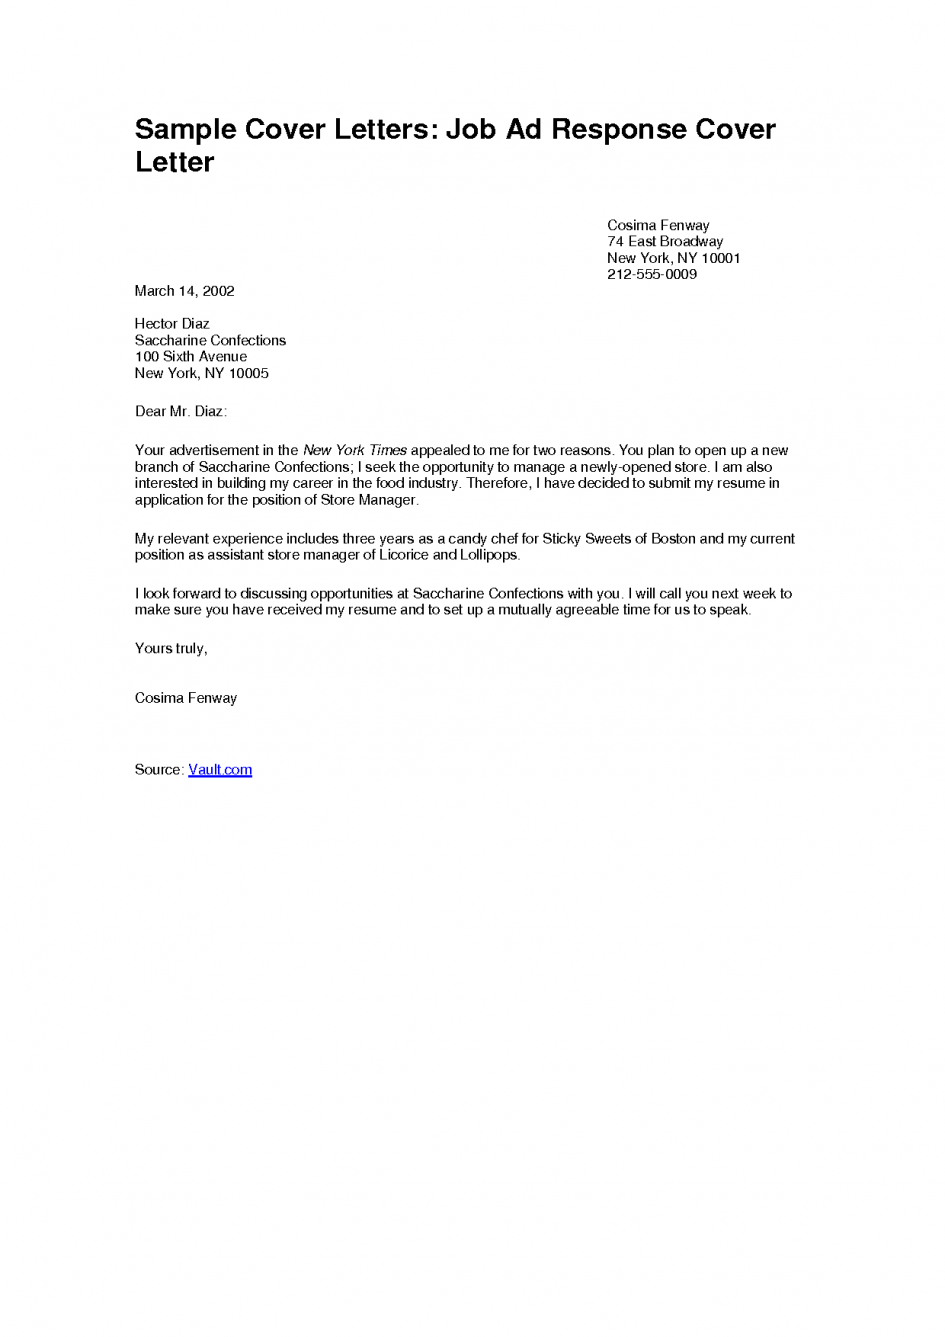 Simple Cover Letter Samples Cover Letter Employment The Letter Sample 8 Employment  Cover .